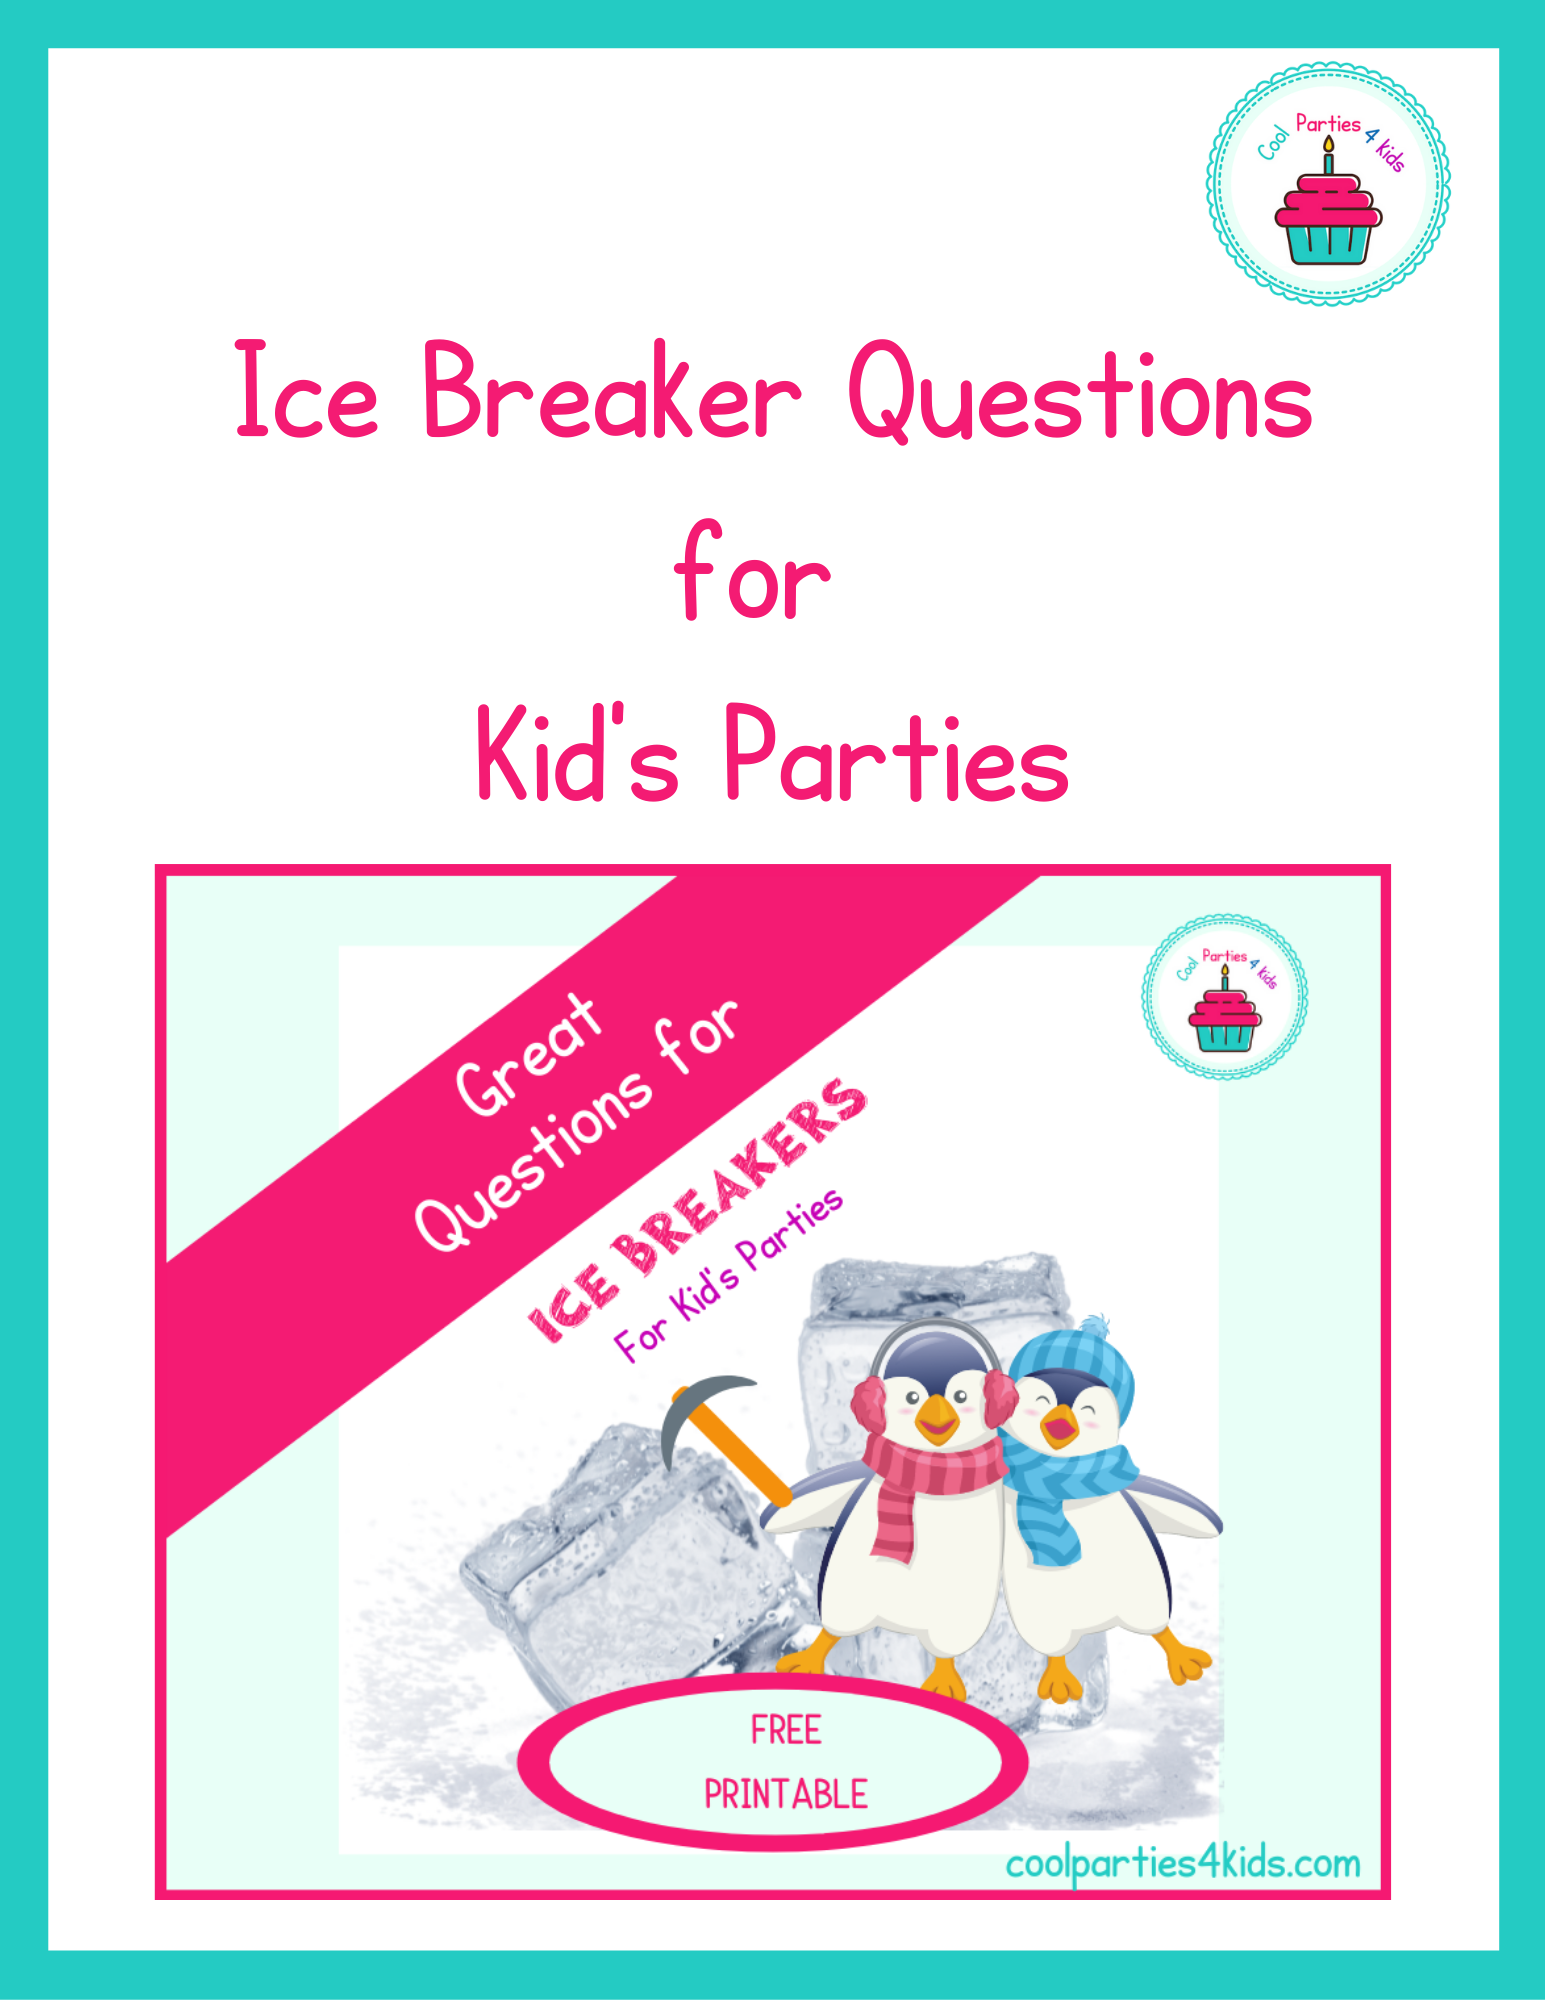 Ice Breaker Questions for Kid's Parties